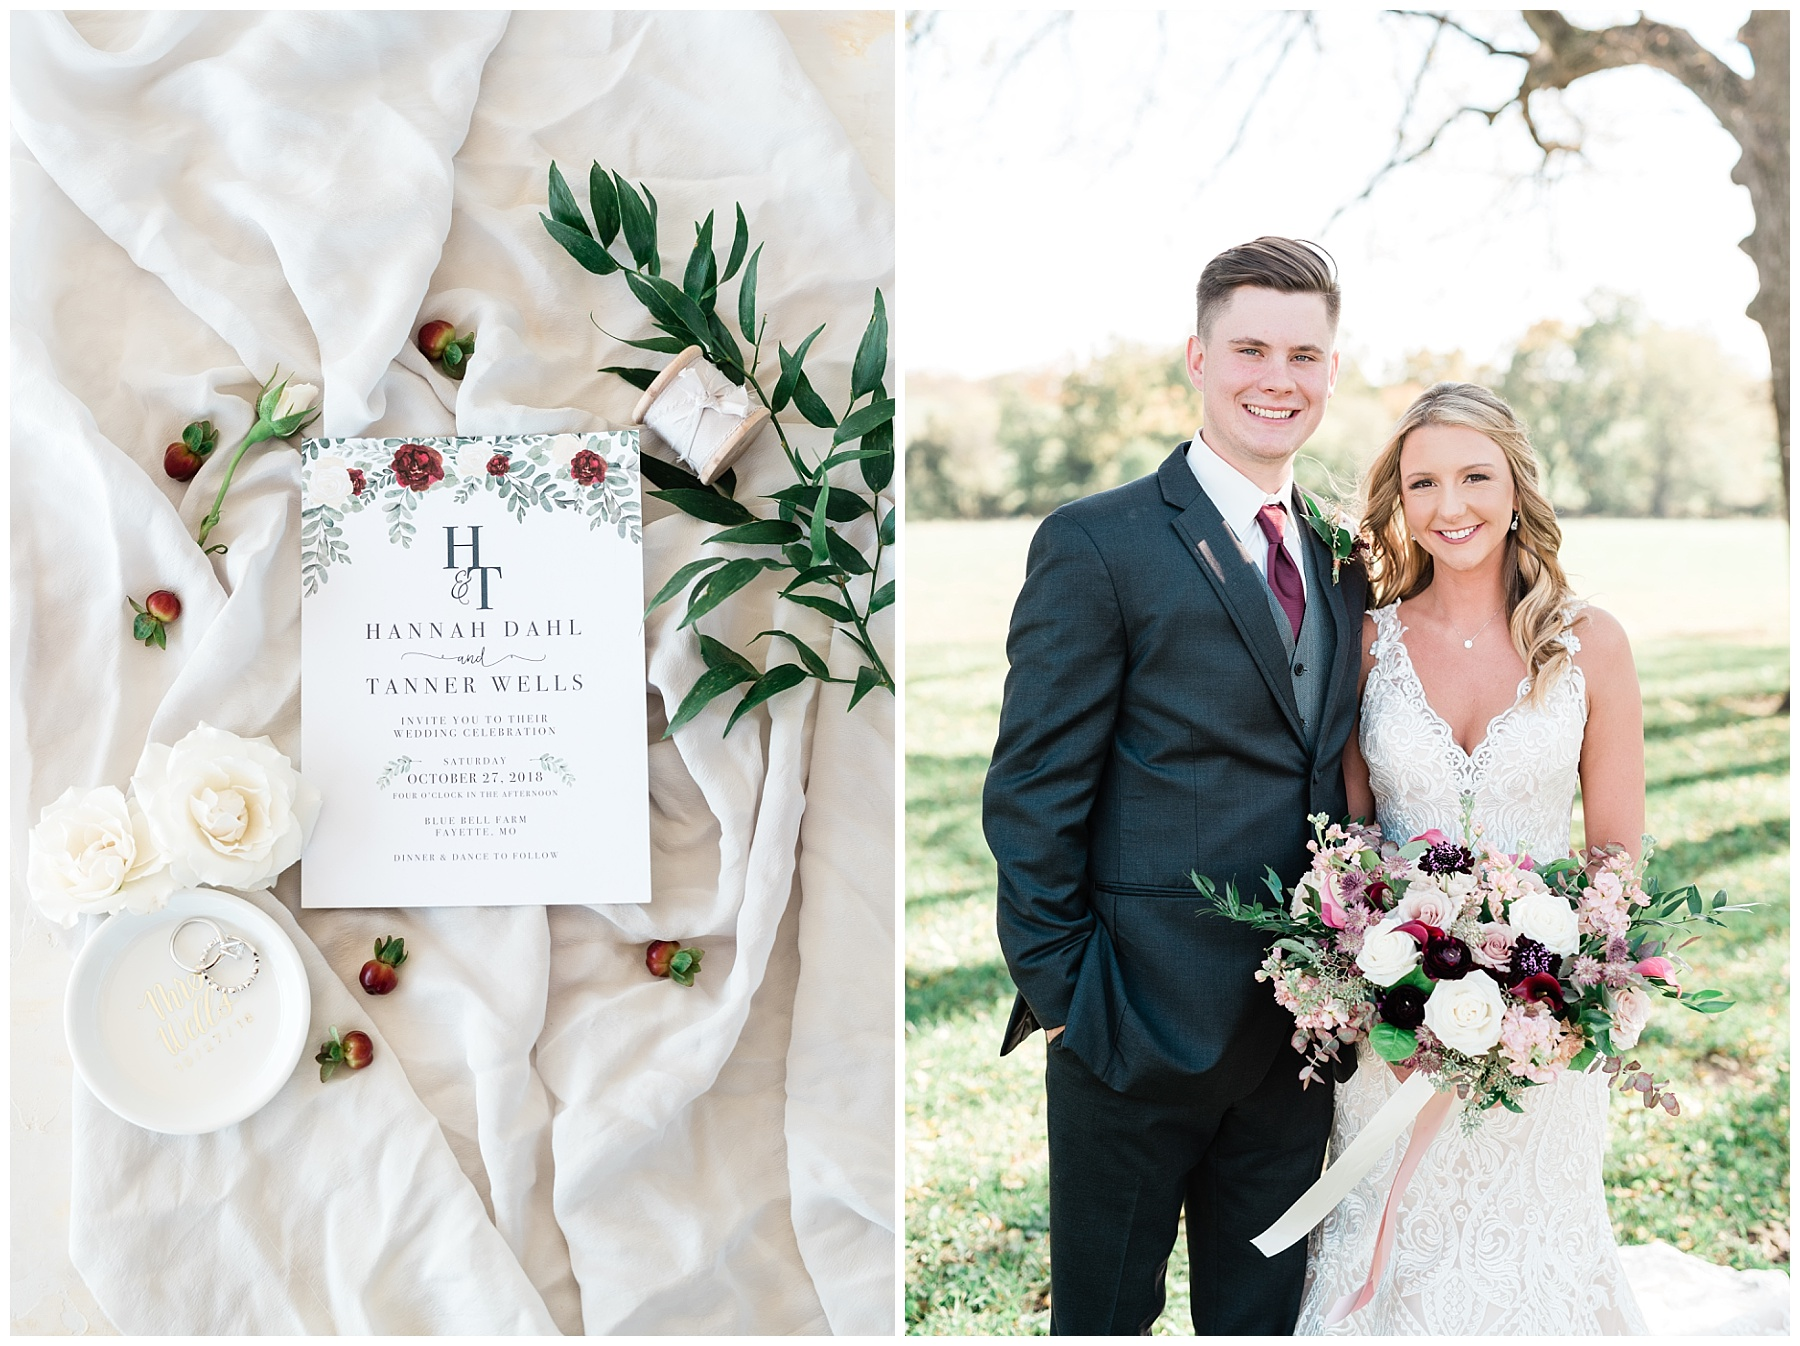 Golden Autumn Outdoor Wedding with Ivory, Bergundy, and Blush Color Palette at Blue Bell Farms  by Kelsi Kliethermes Photography_0053.jpg